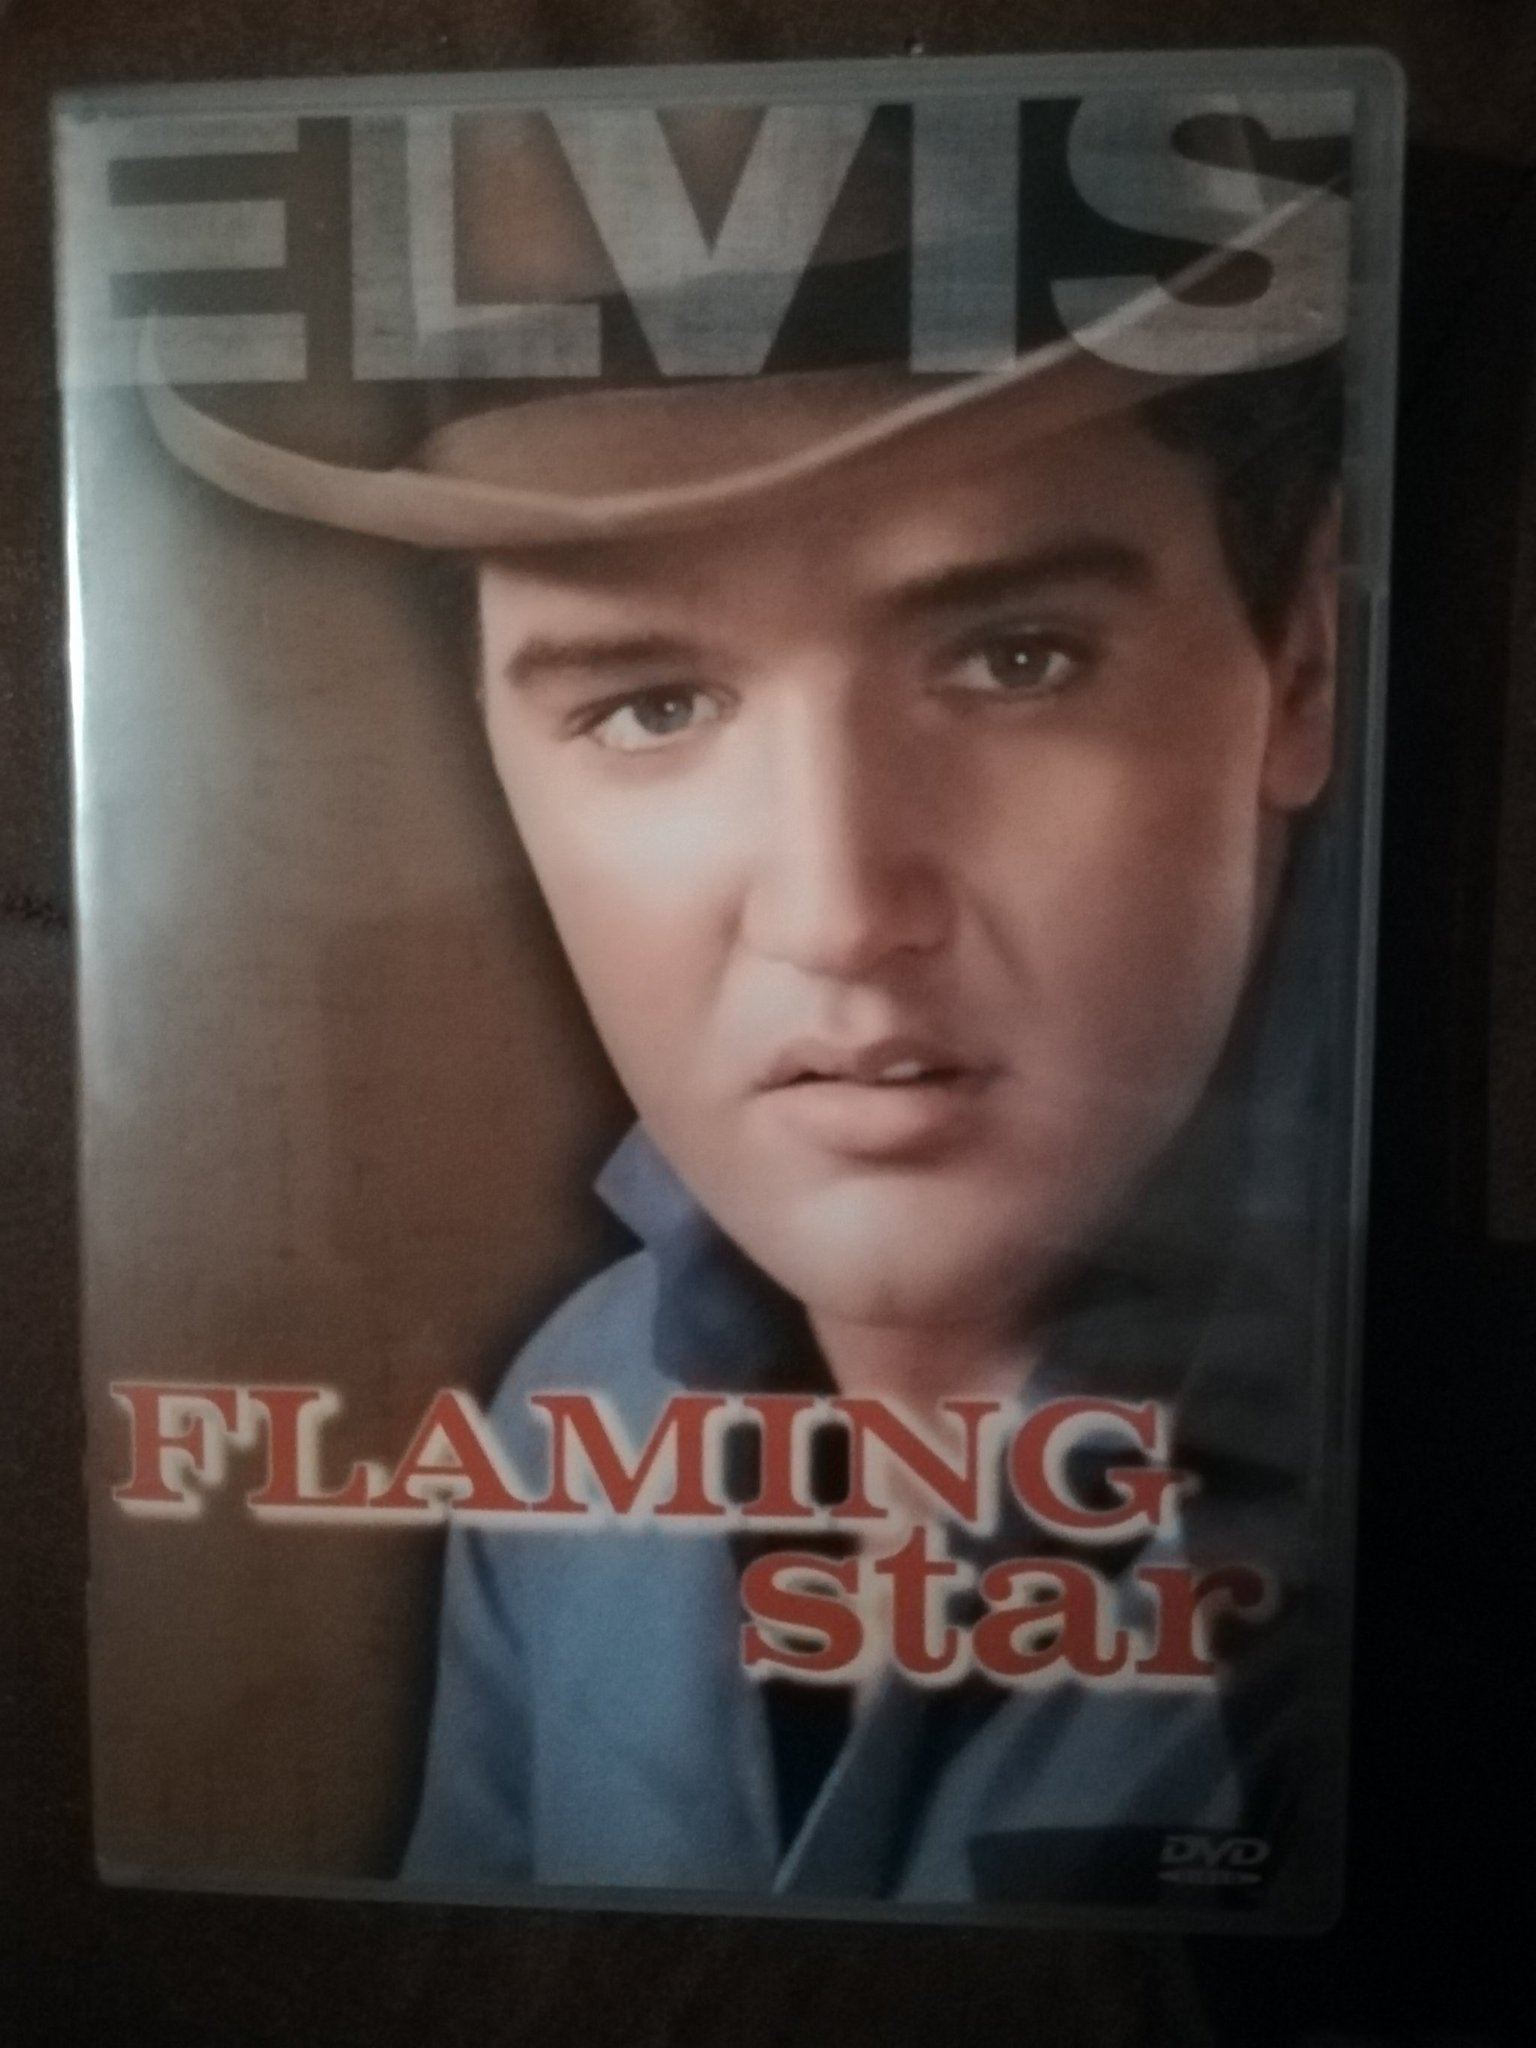 Elvis Presley - Flaming Star - DVD.